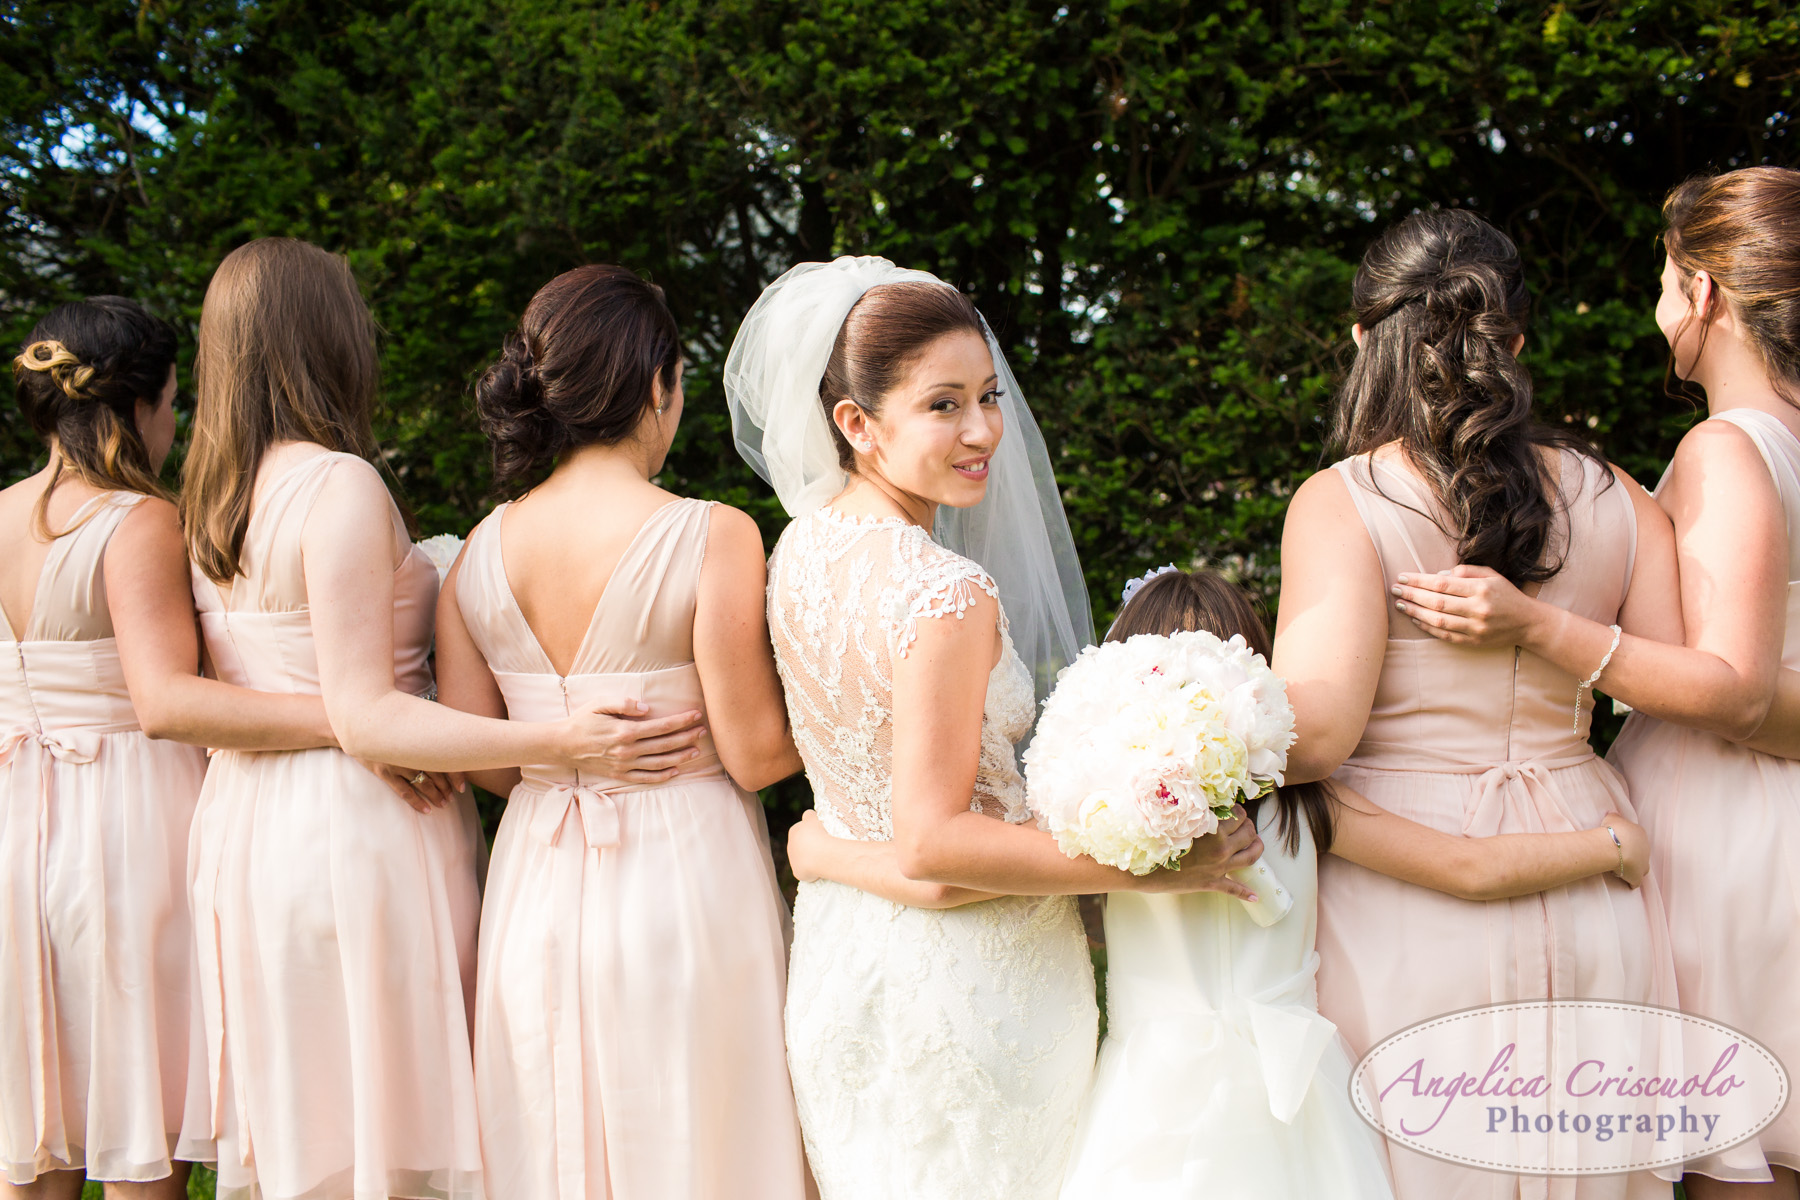 Bridal Party photos New York Ideas